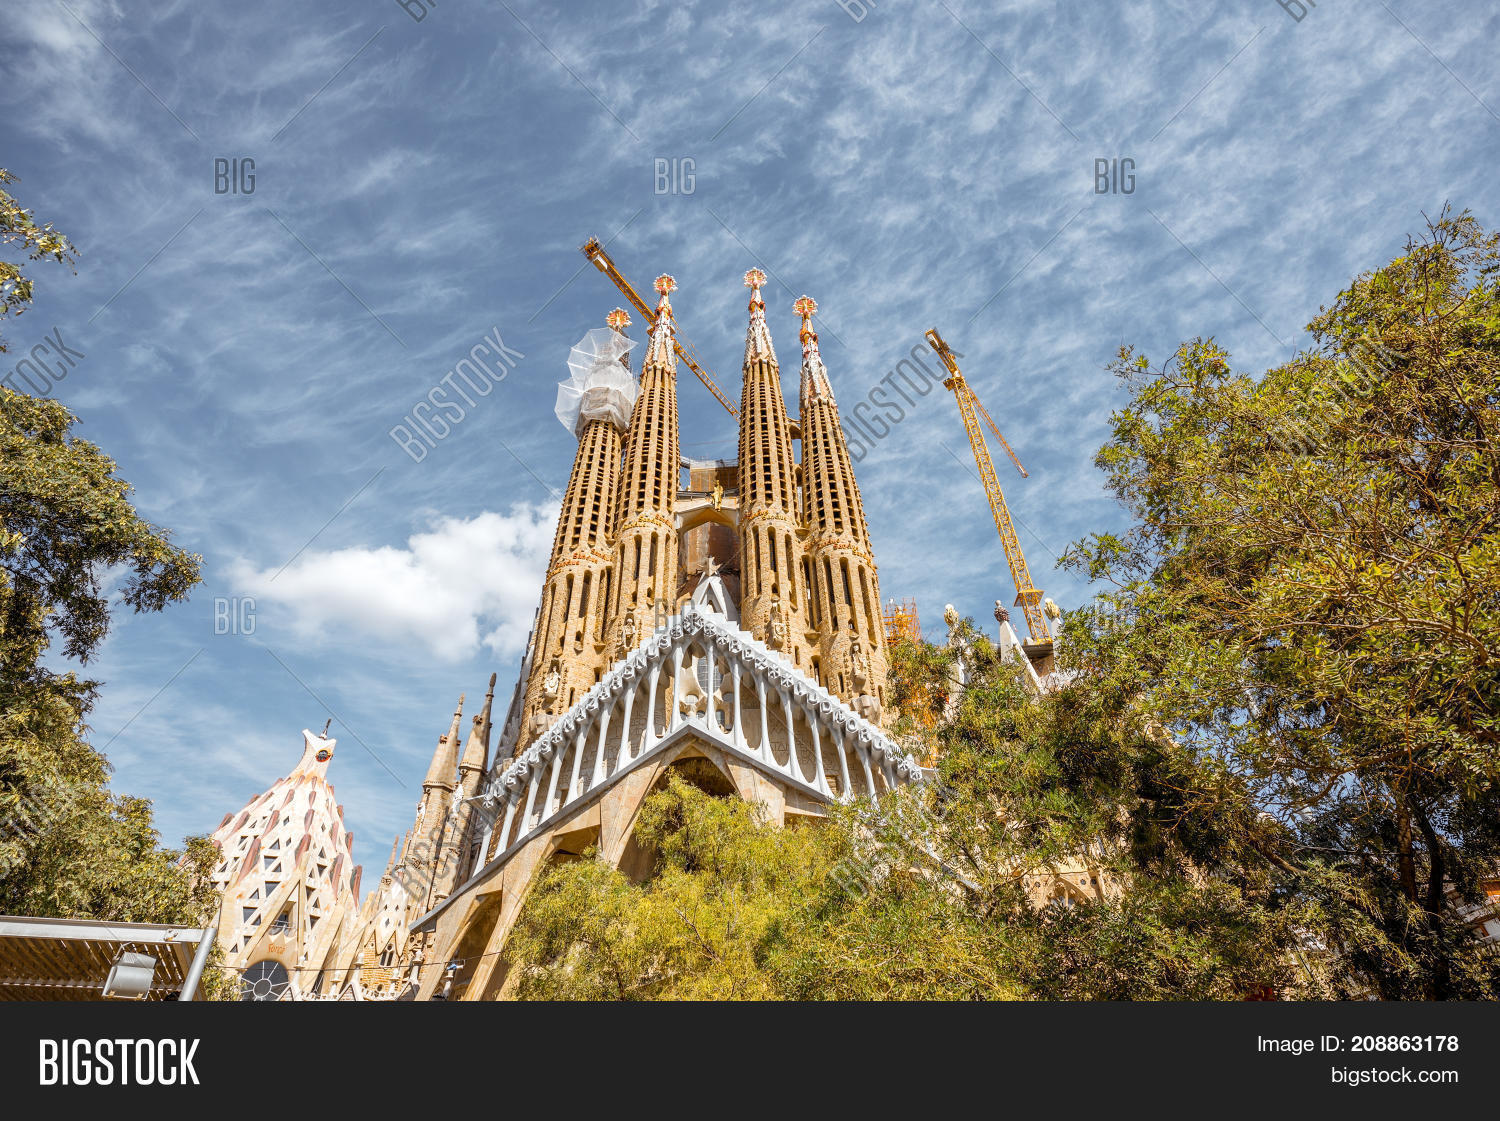 Barcelona Spain Image Photo Free Trial Bigstock